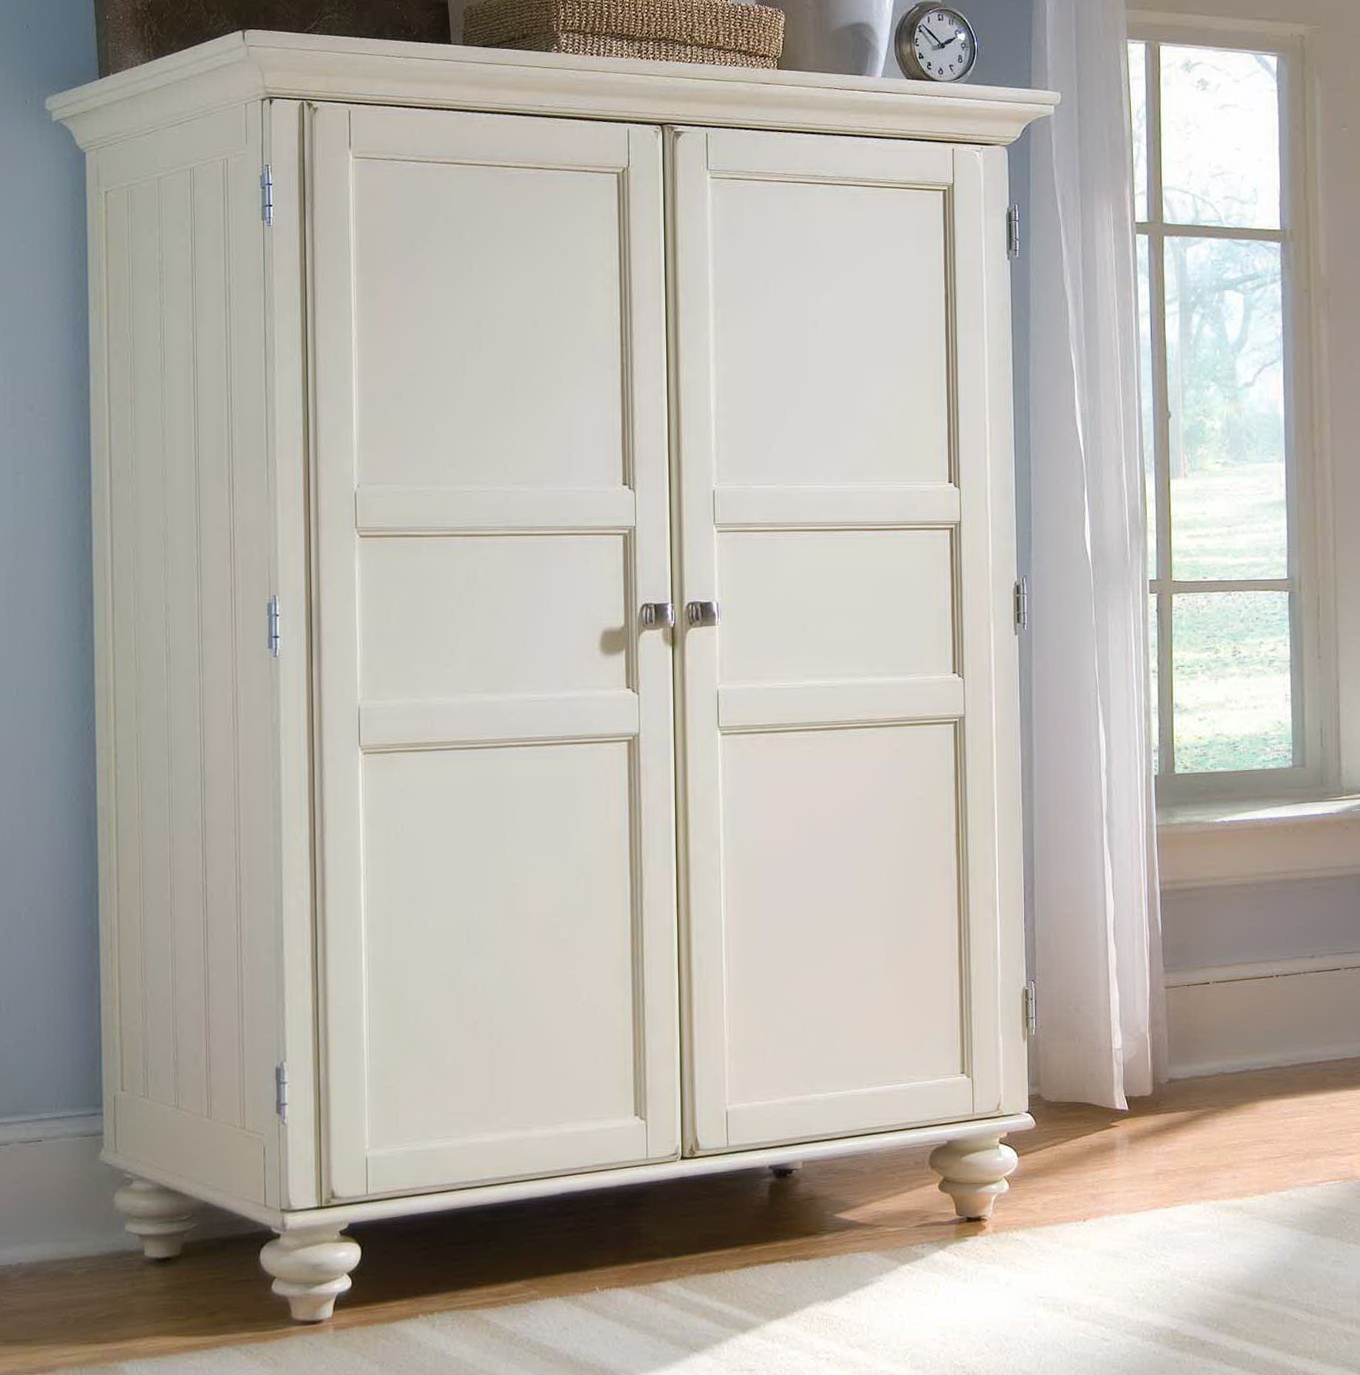 Free Standing Armoire | Cheap Wardrobe Closet | Clothing Armoire with Drawers